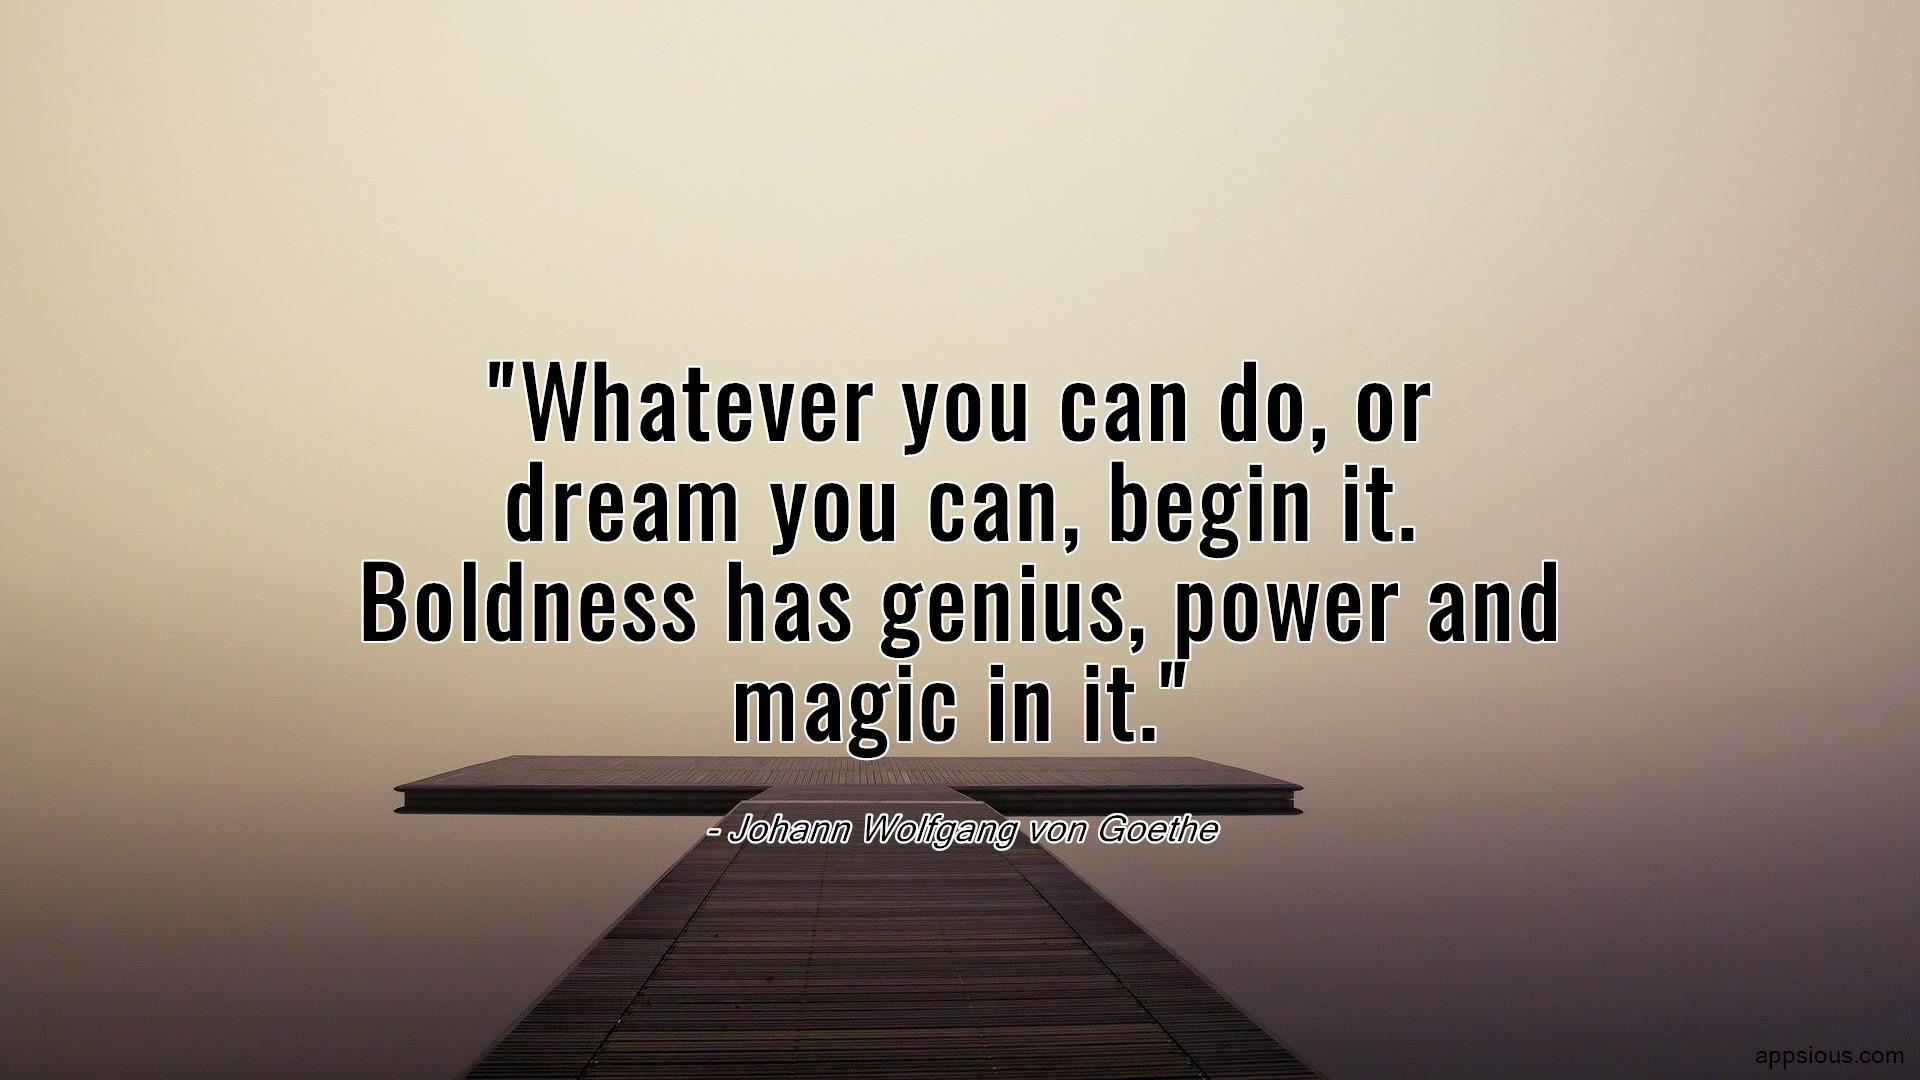 Whatever you can do, or dream you can, begin it.  Boldness has genius, power and magic in it.